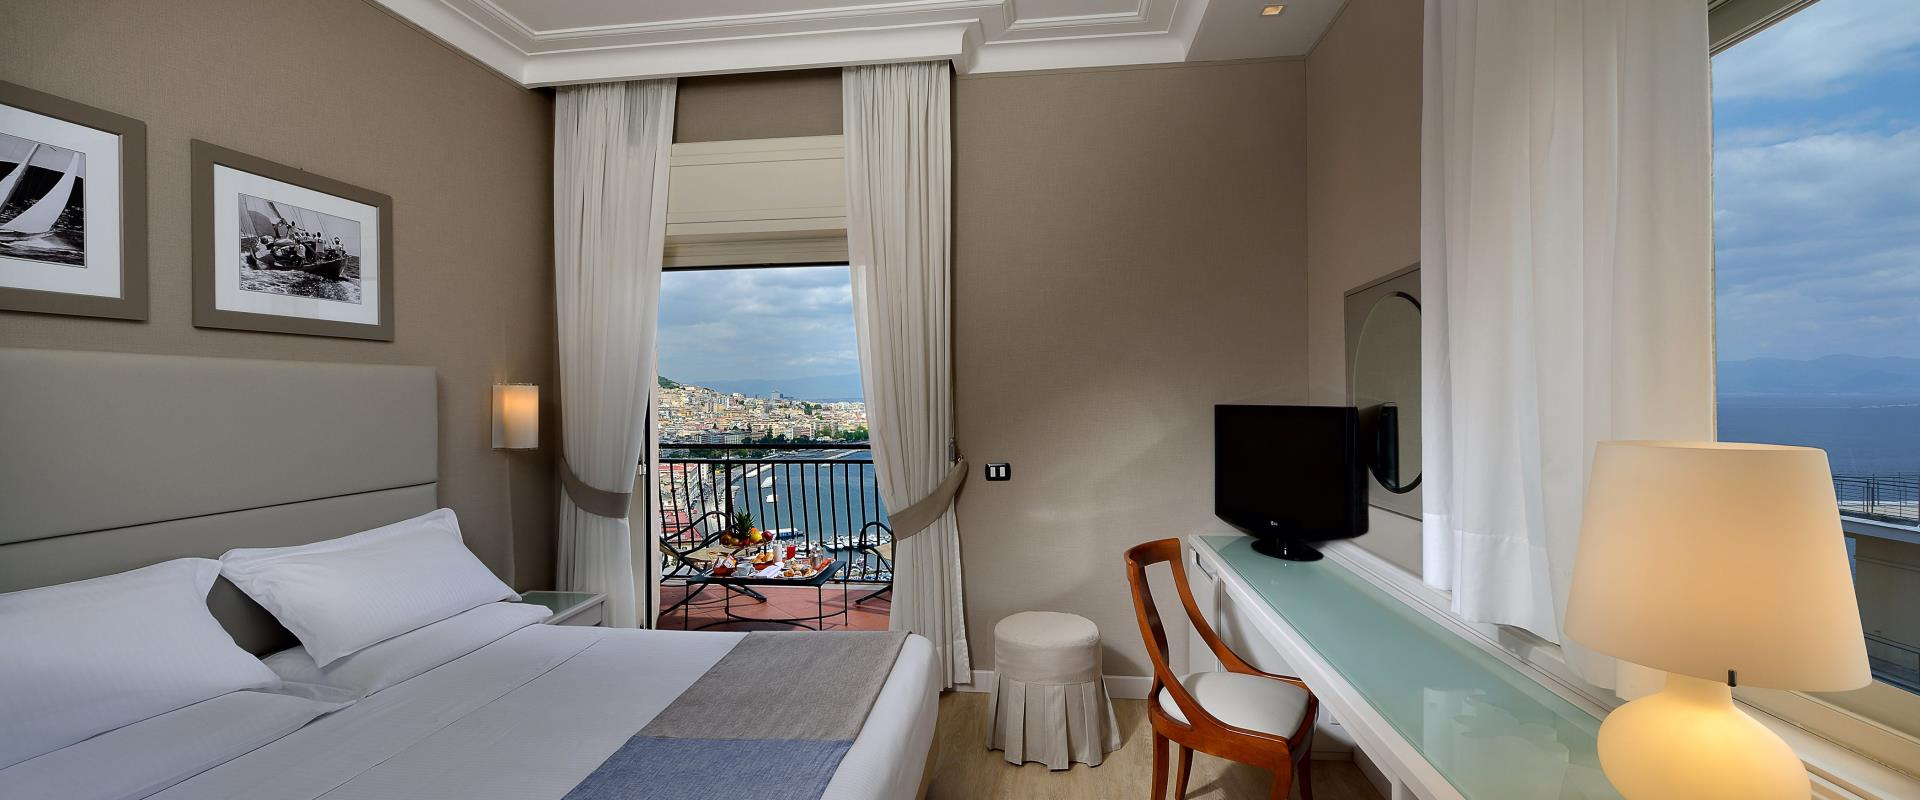 Sea View Double Room across the Gulf of Naples - Hotel Paradiso Naples